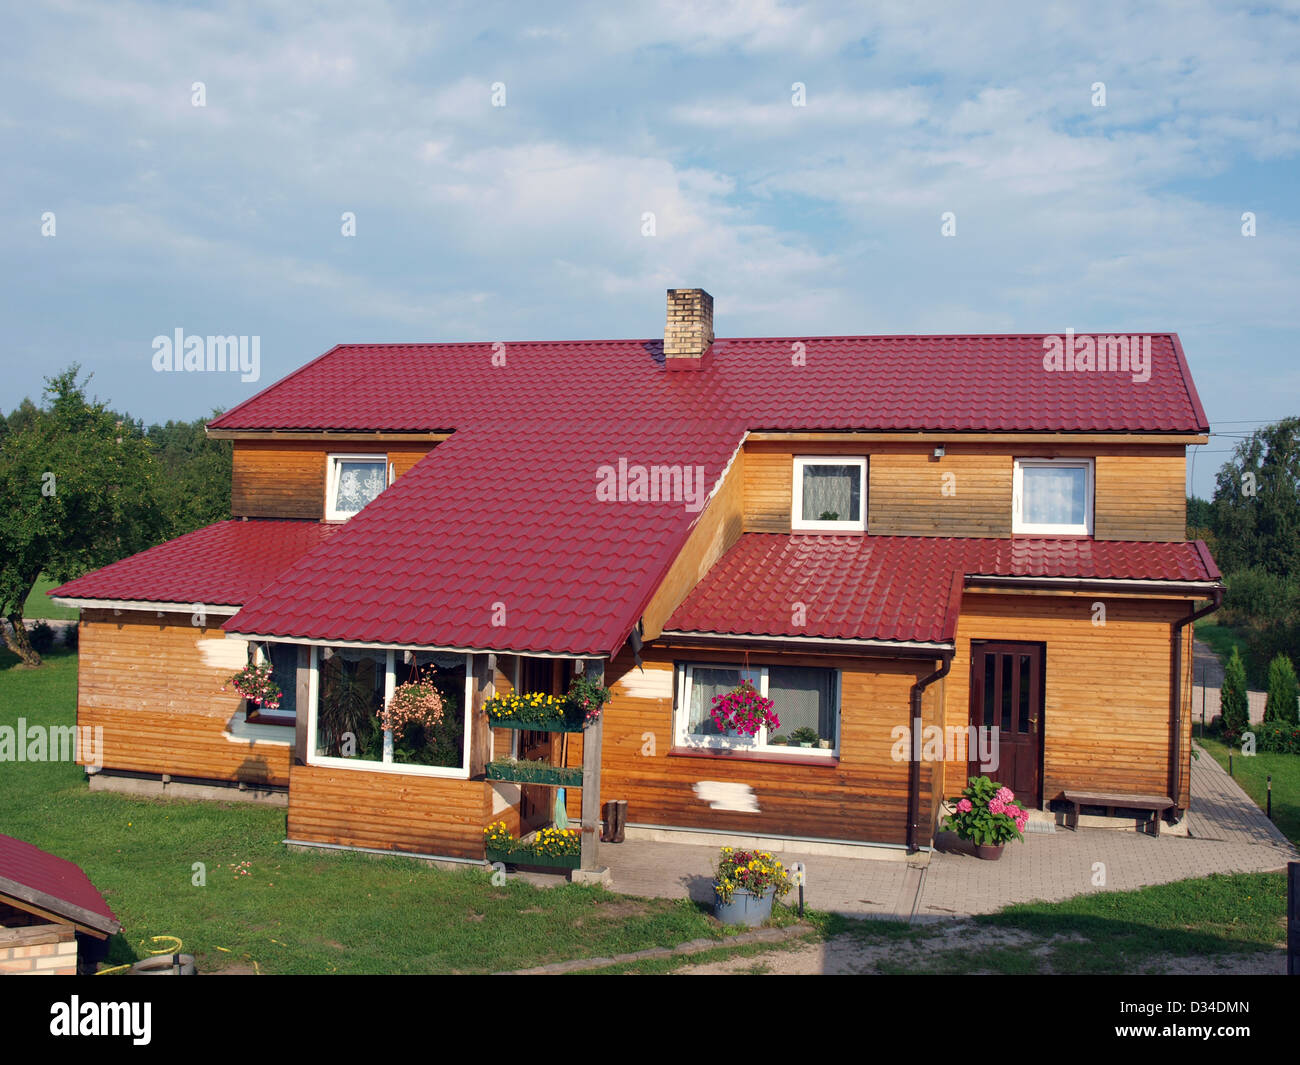 Country House With Wooden Walls And Red Metal Roof